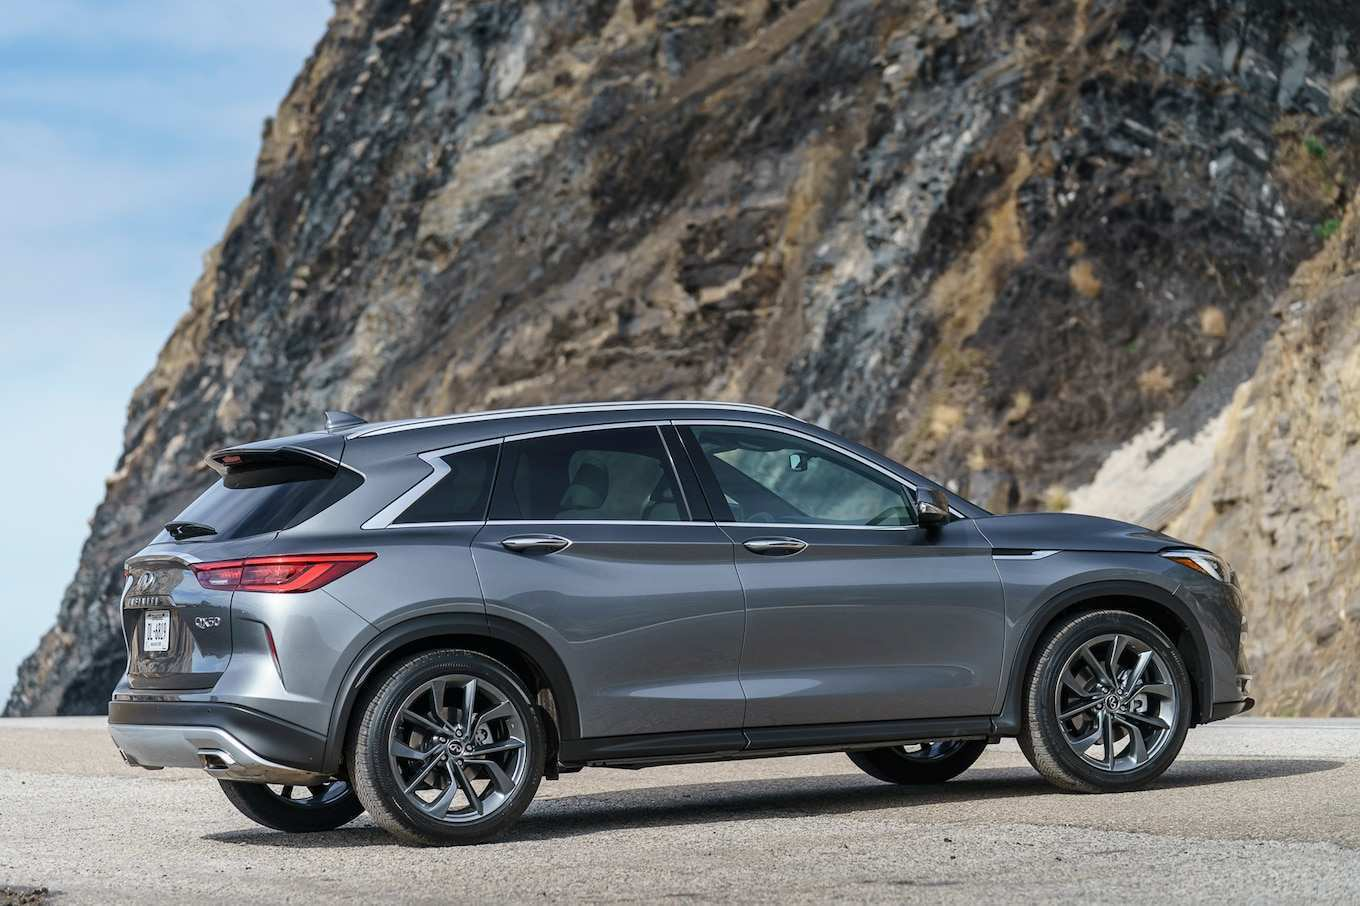 46 New Infiniti Qx50 2019 Images Overview And Price Redesign and Concept with Infiniti Qx50 2019 Images Overview And Price